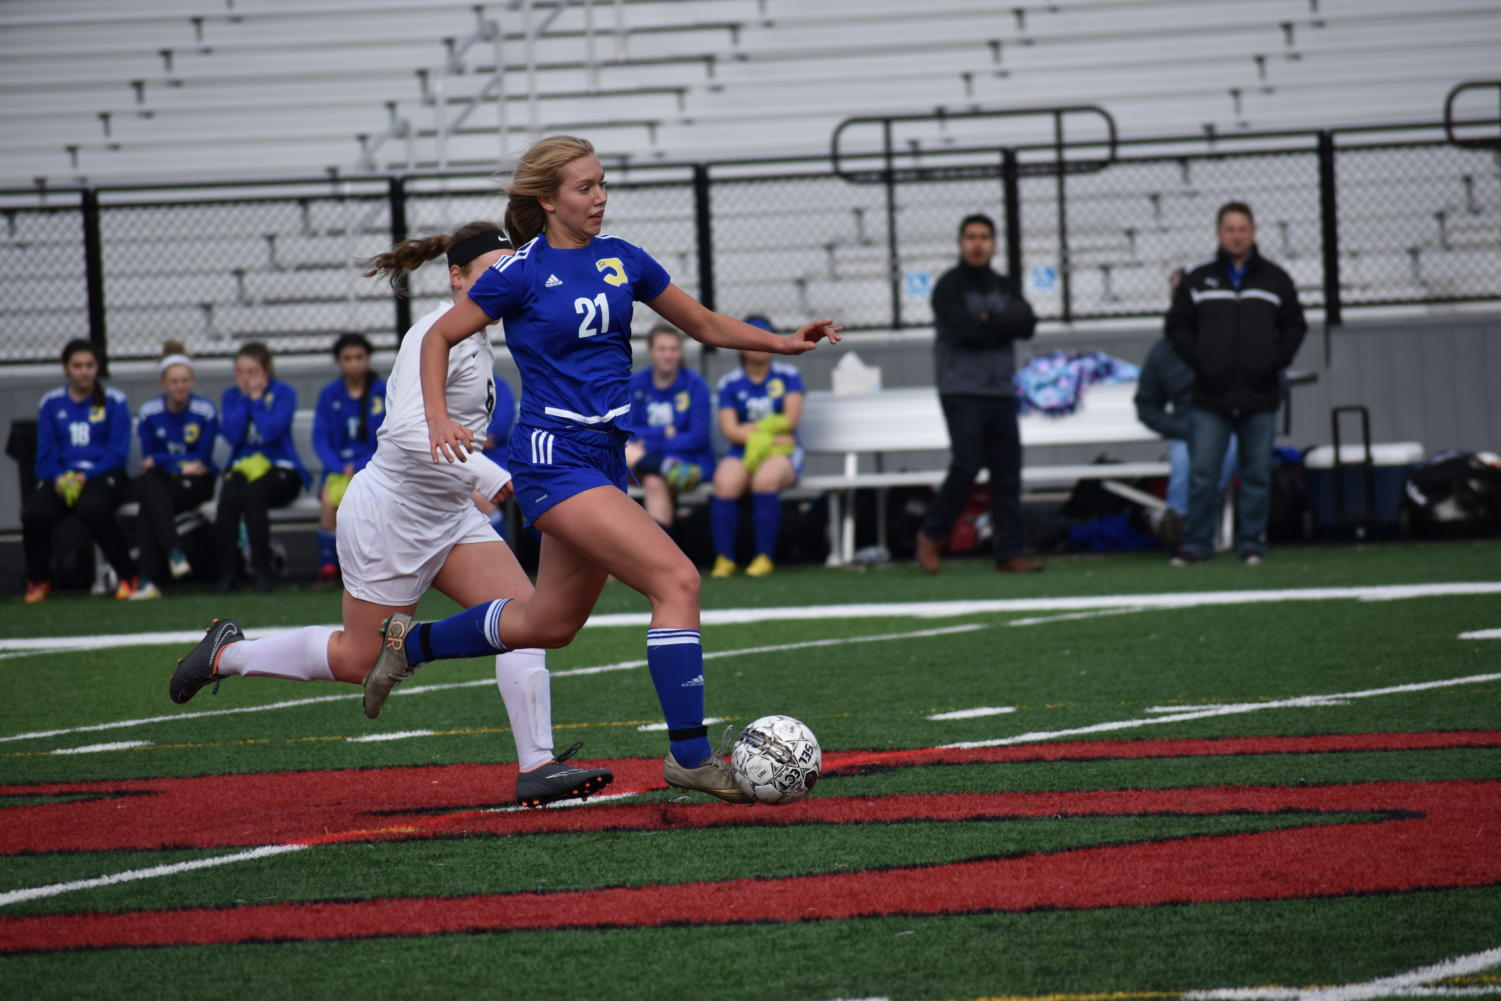 The SJCA girls soccer team is back at the head of the pack.